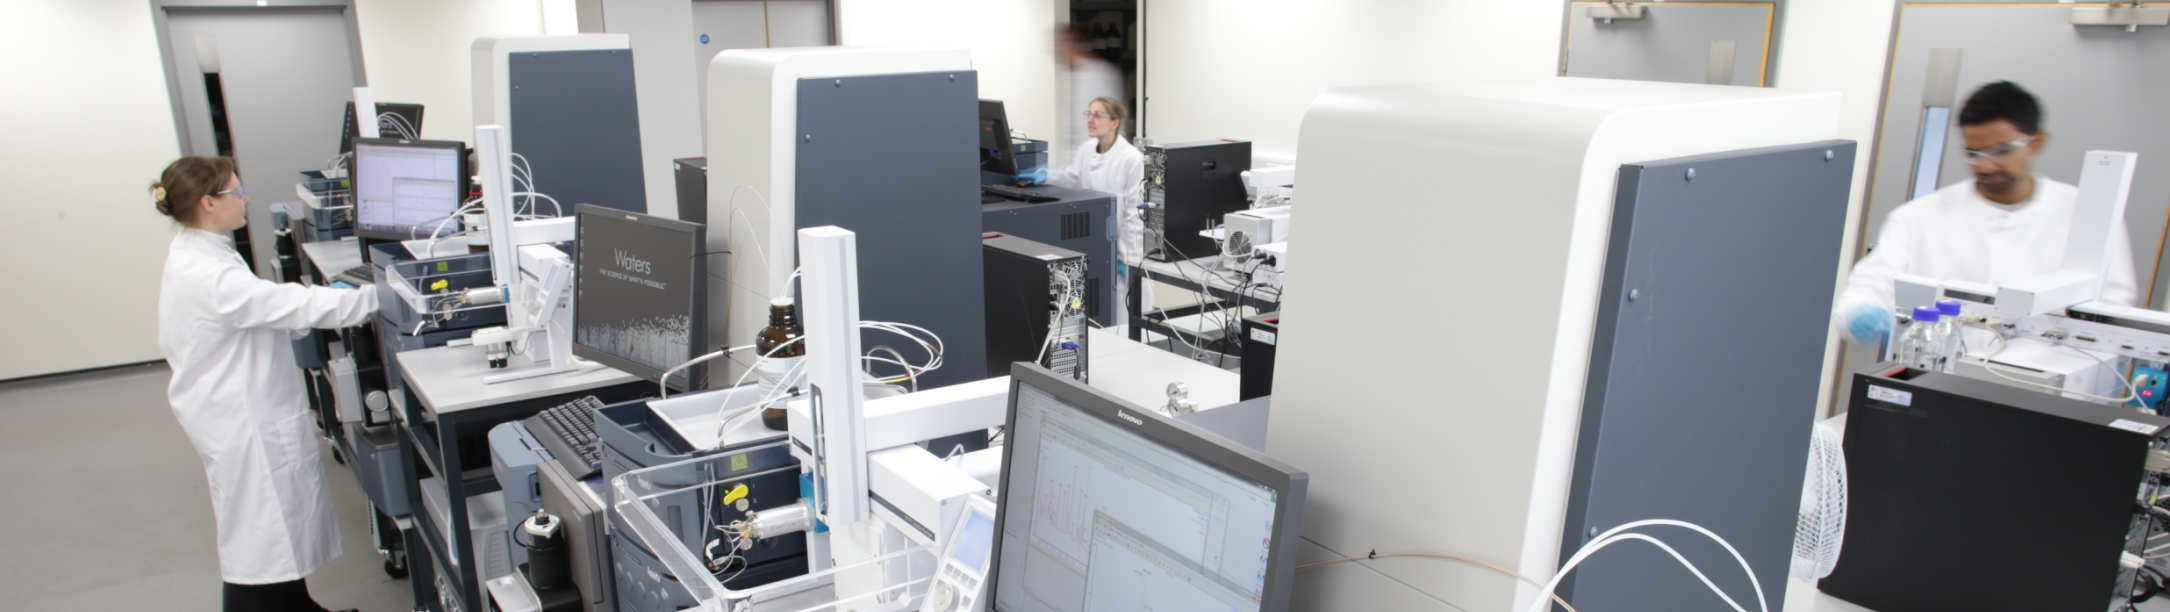 Phenome research lab equipment and researchers